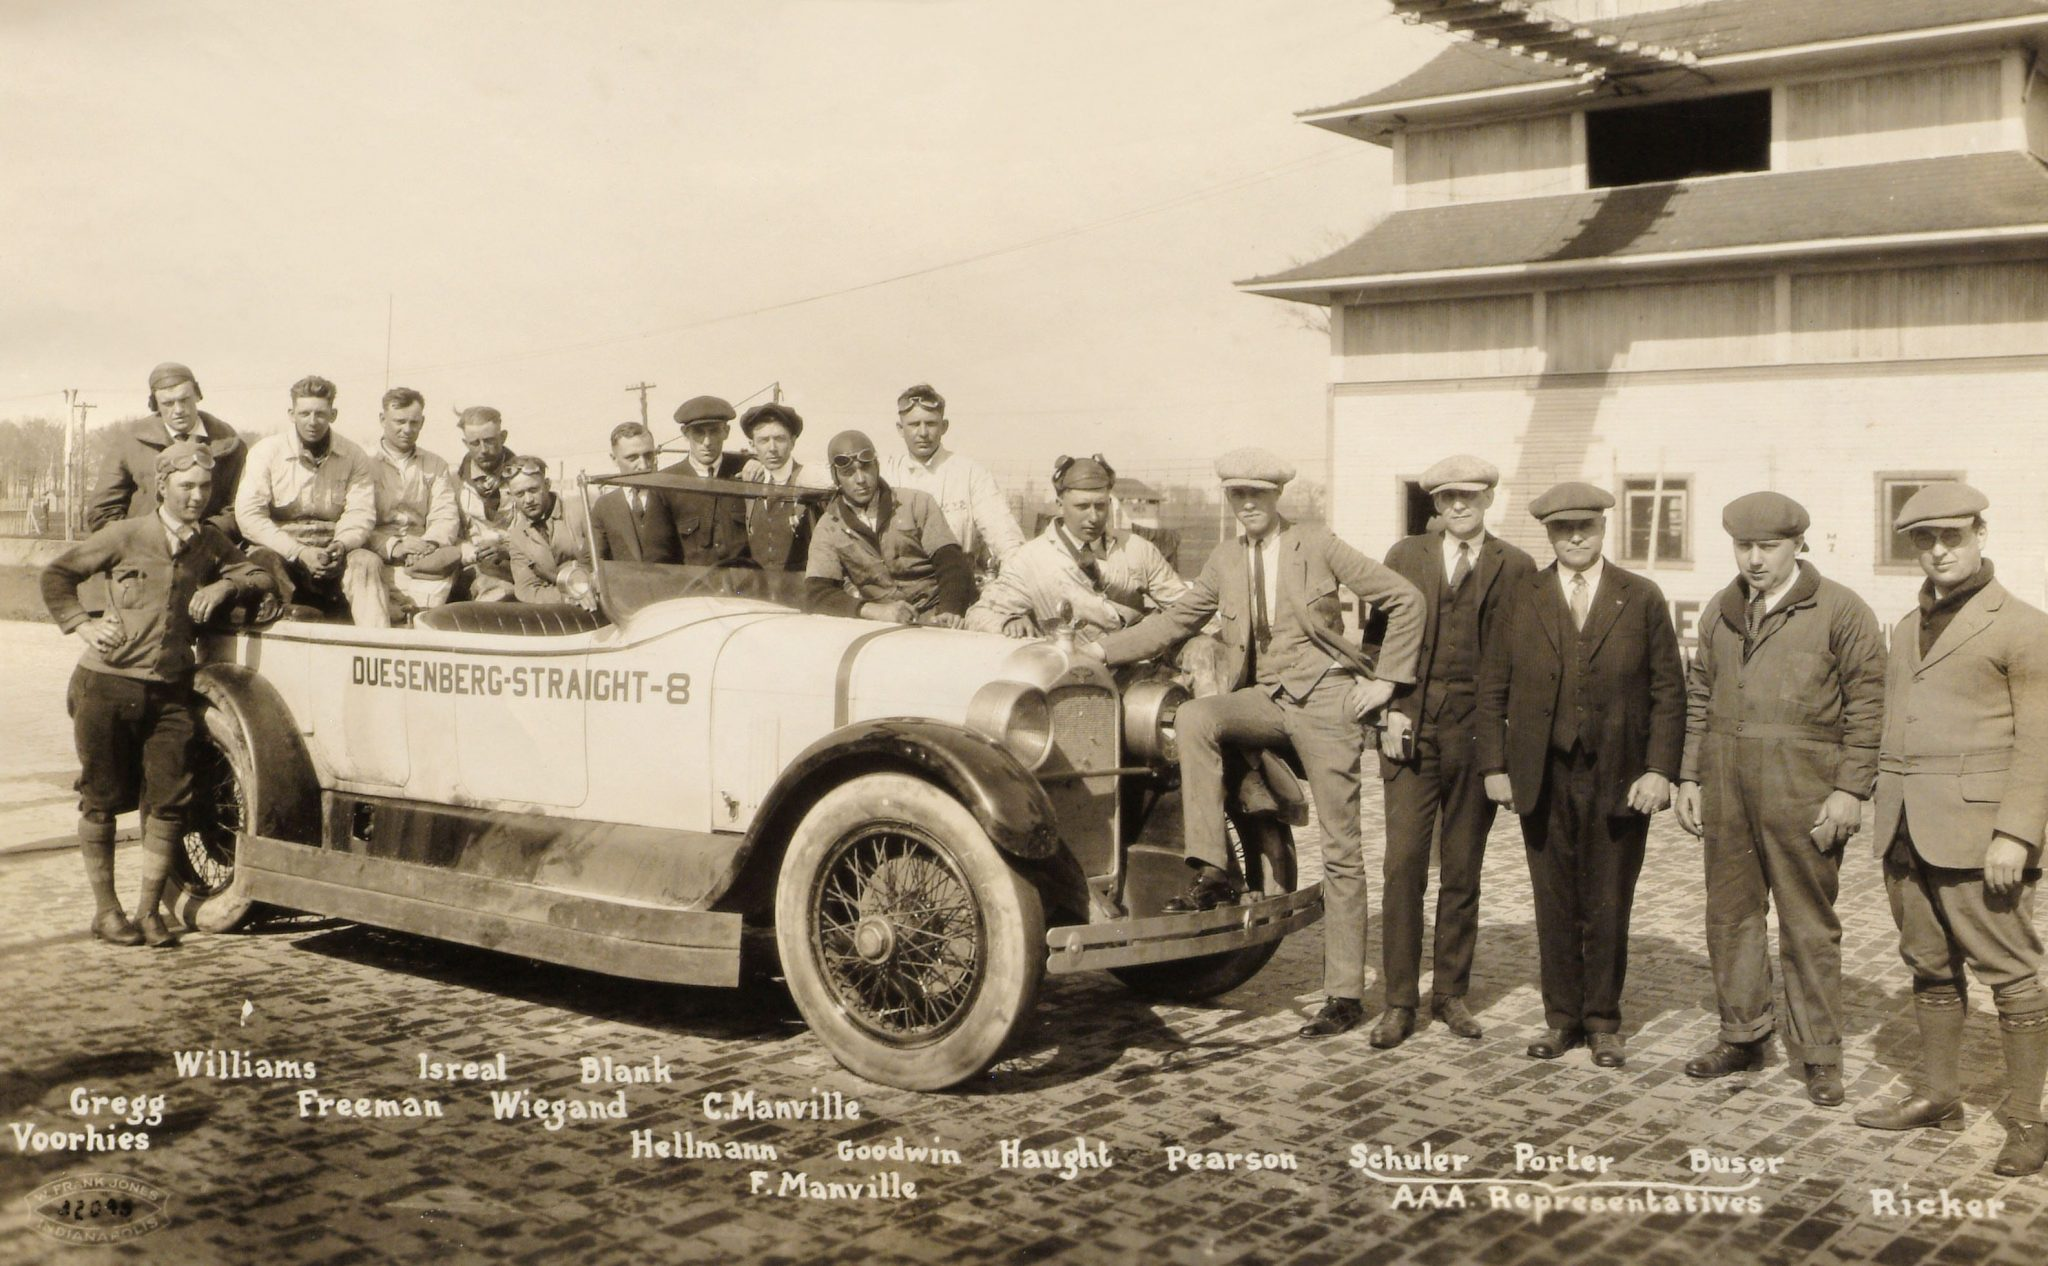 It took a 14-man team and three AAA observers to verify the Duesenberg Model A's 24-hours record run at Indianapolis in April 1923. The car clocked 3,155 miles in 24 hours for an average speed of 131.45 mph. In total the car accumulated over 18,000 miles during three weeks of endurance tests, and then paced the Indy 500 in May. It was the only instance in the history of the race when the pace car had more accumulated track time than the race cars!